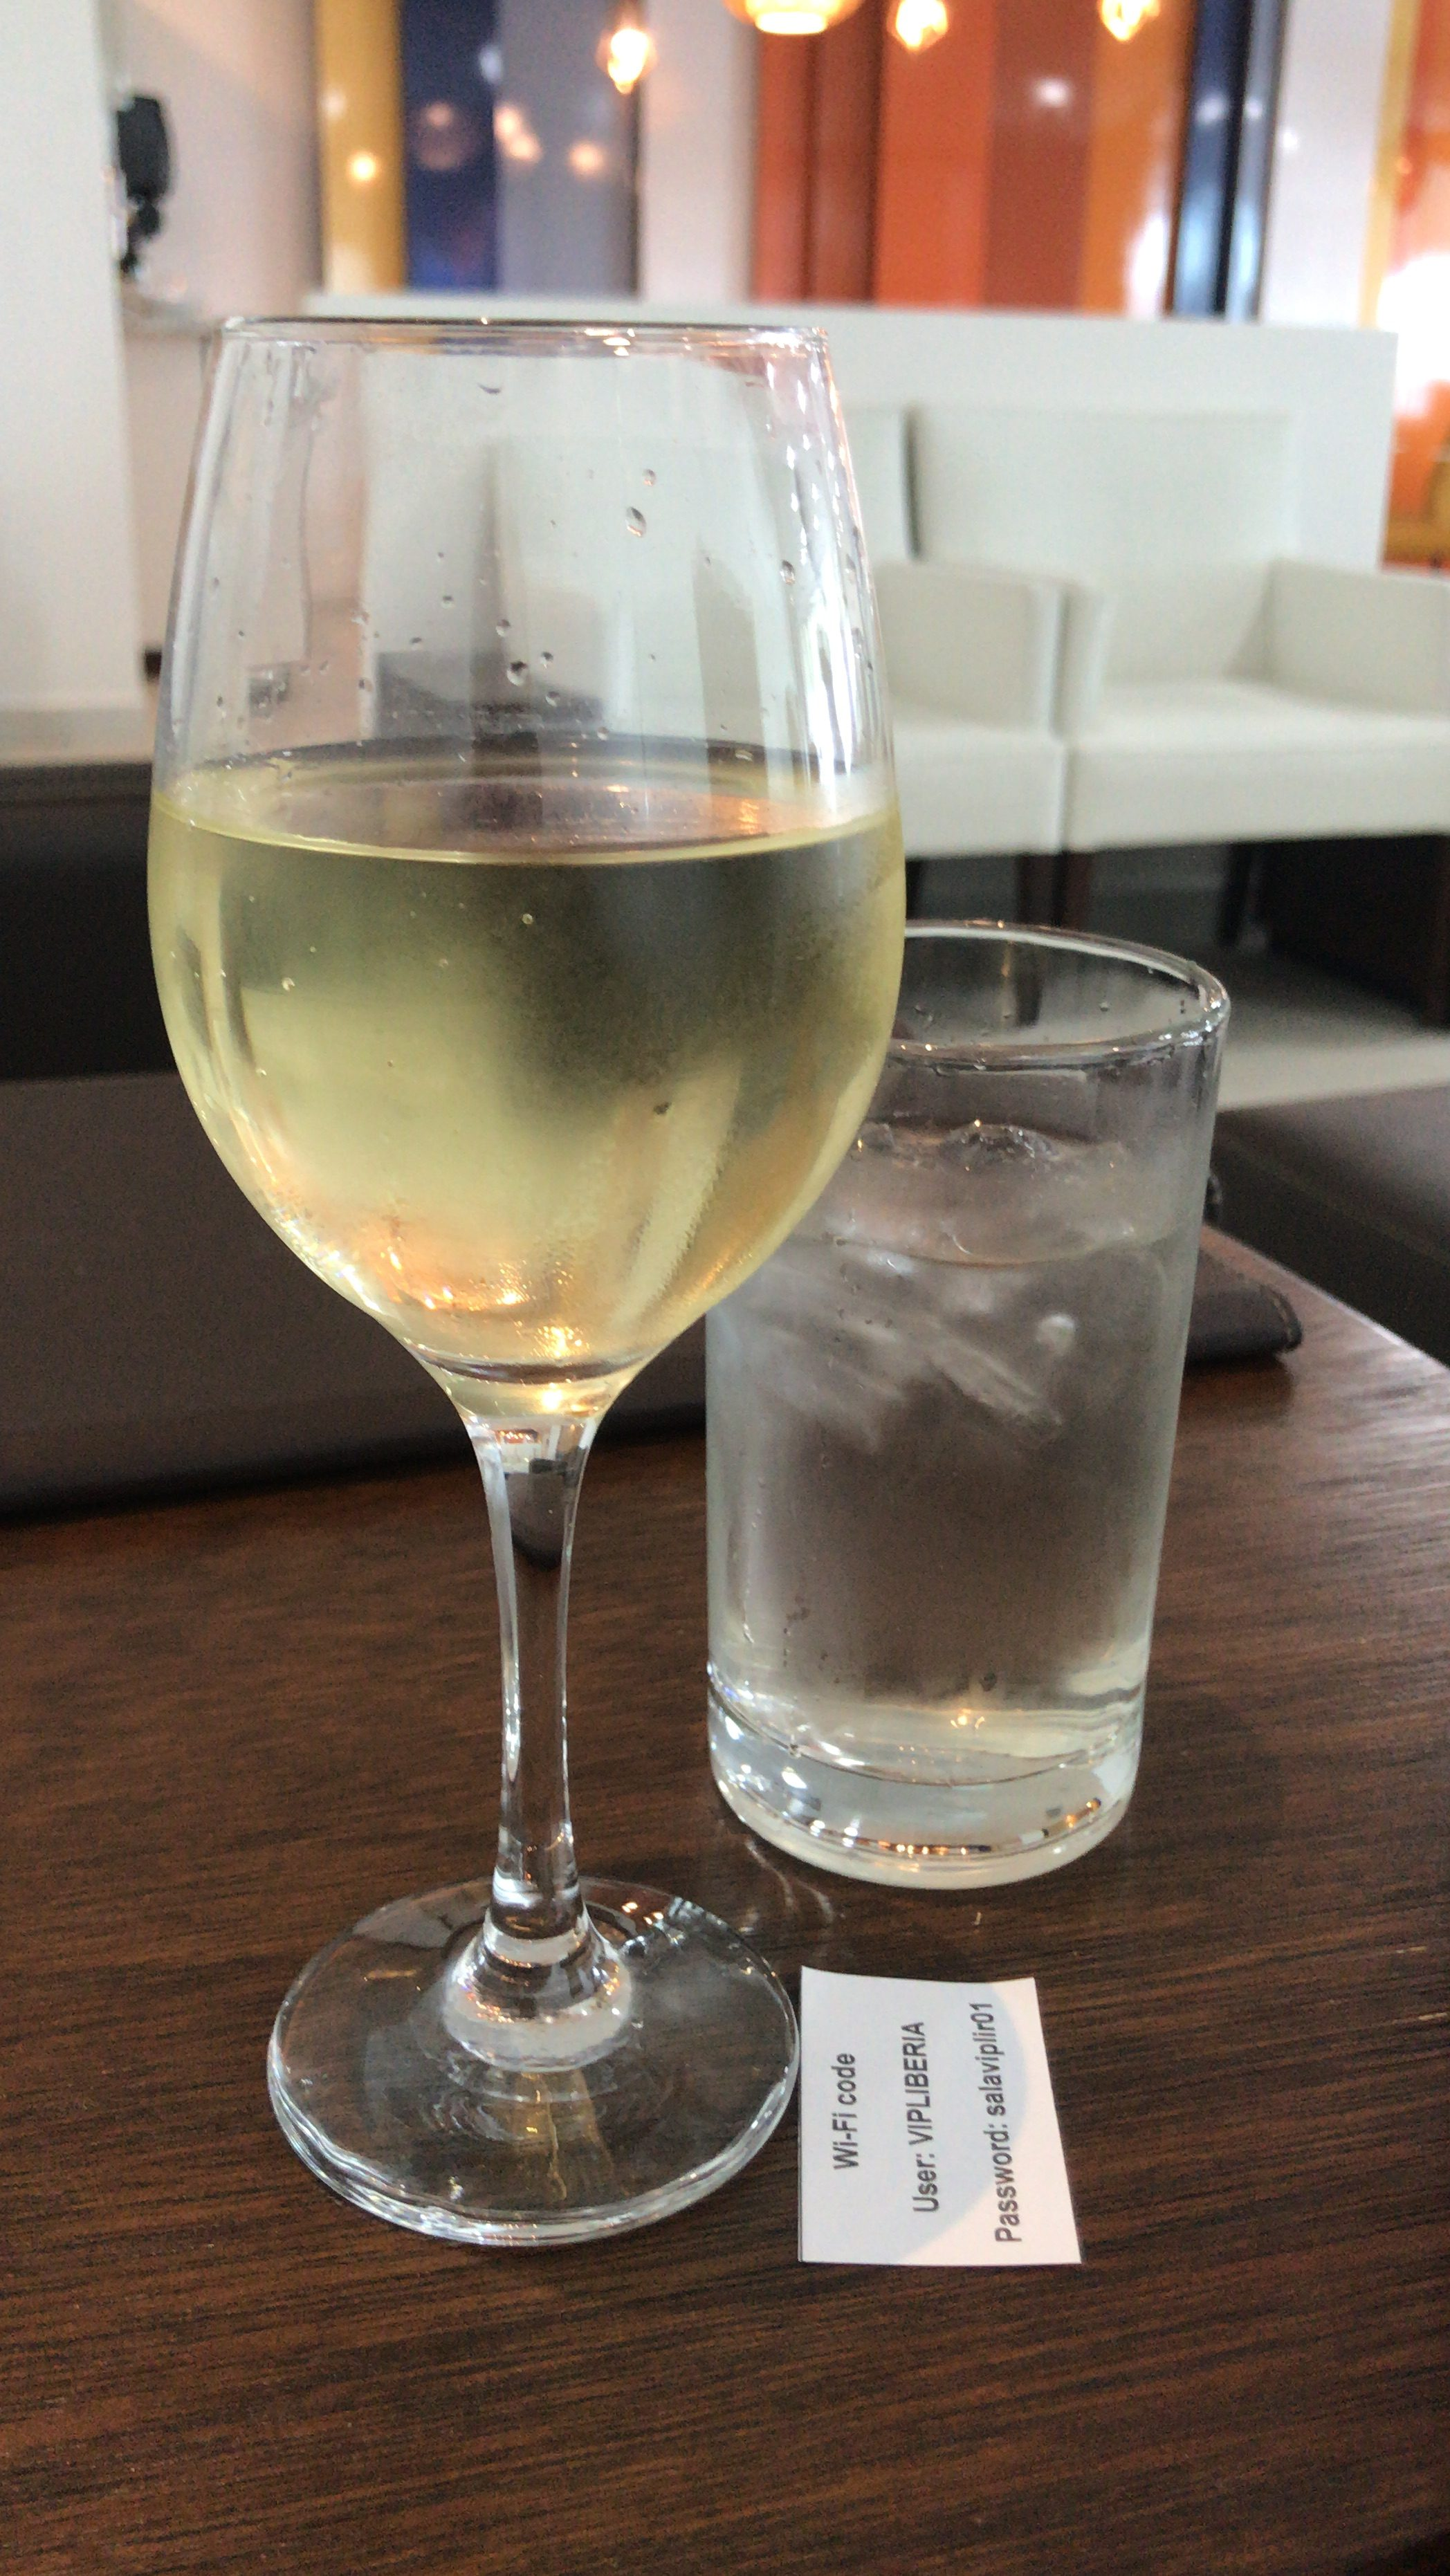 Wine and water- a good way to start the day